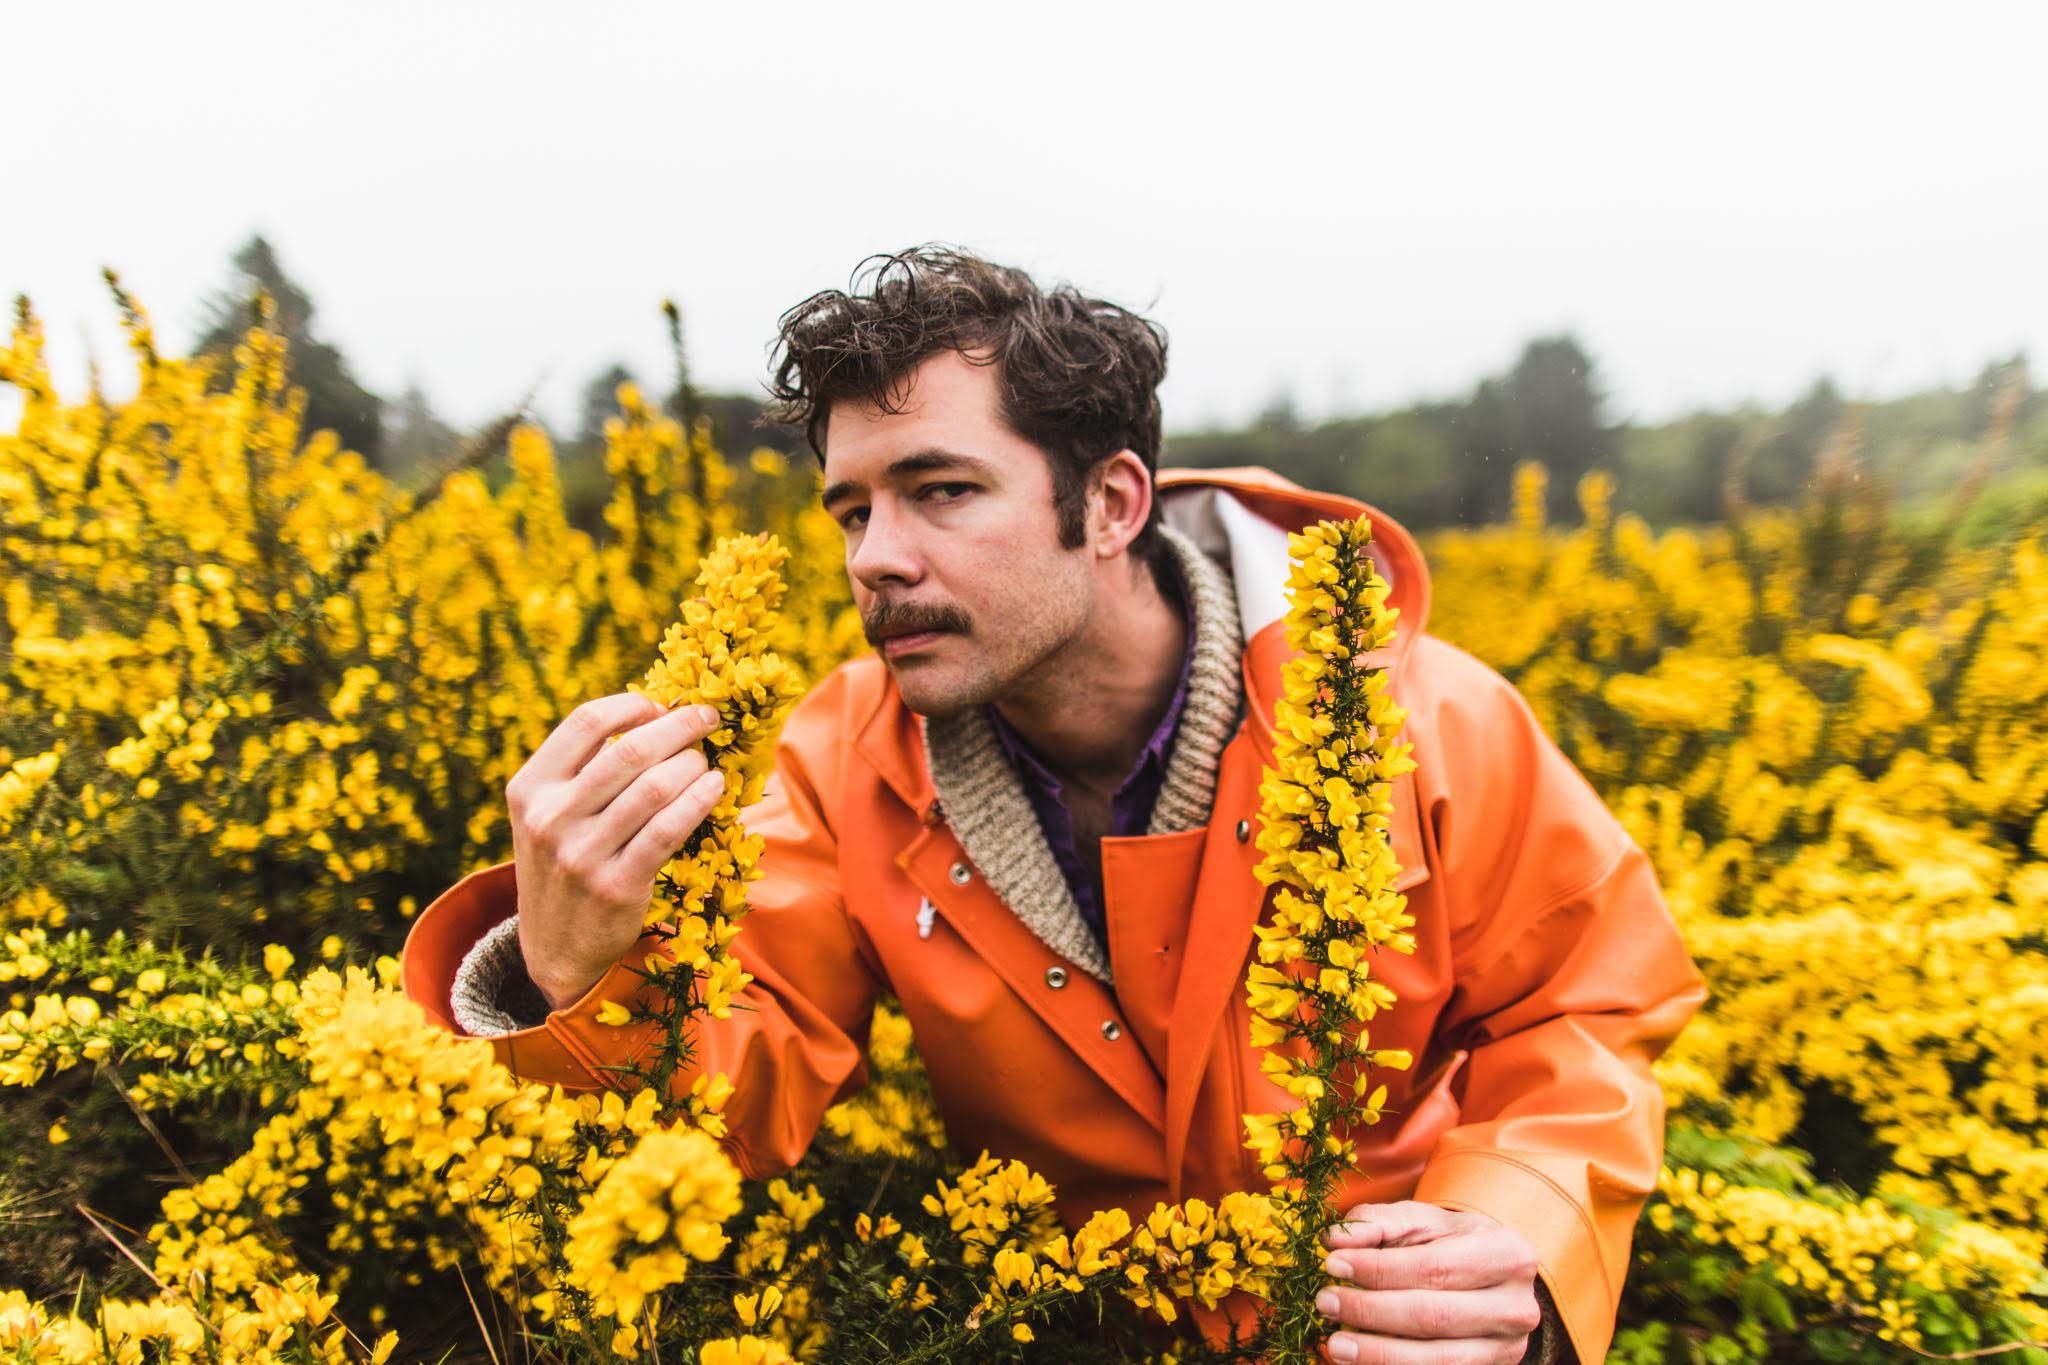 Neil with Flowers 2.jpg